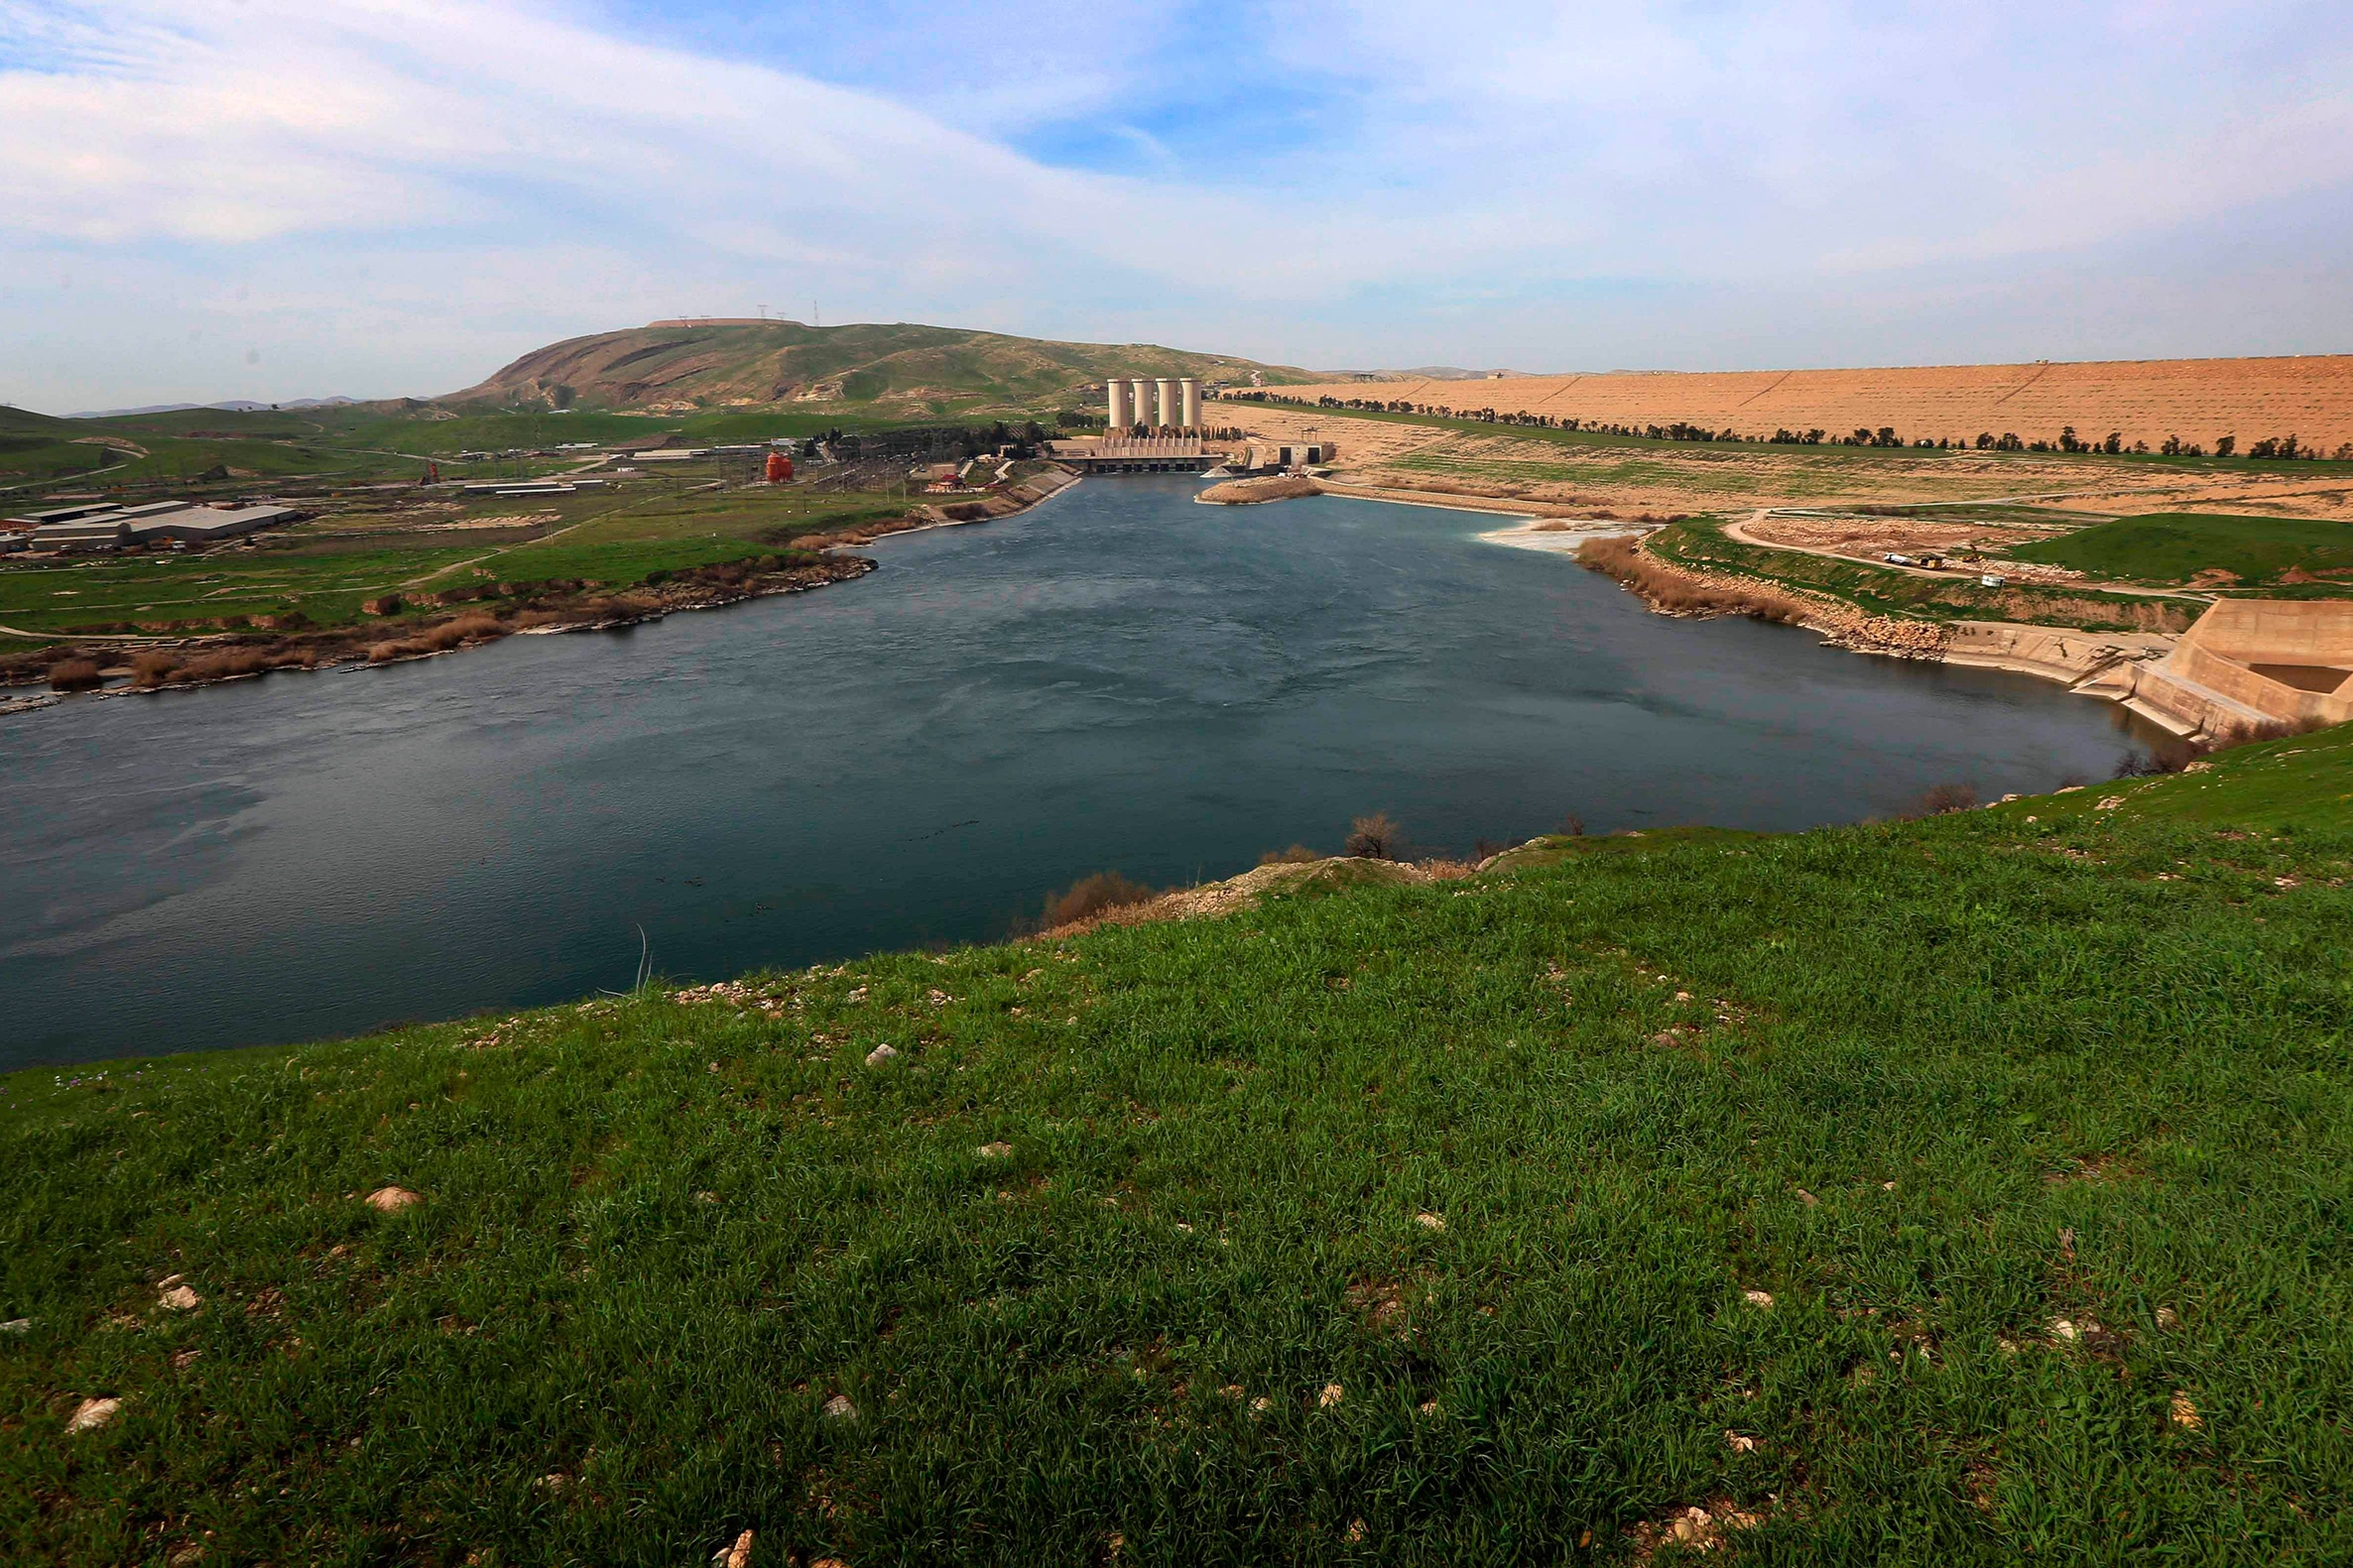 A sweeping view of the Mosul Dam on the Tigris River, about 50km north of Mosul, Iraq, March 3, 2016.